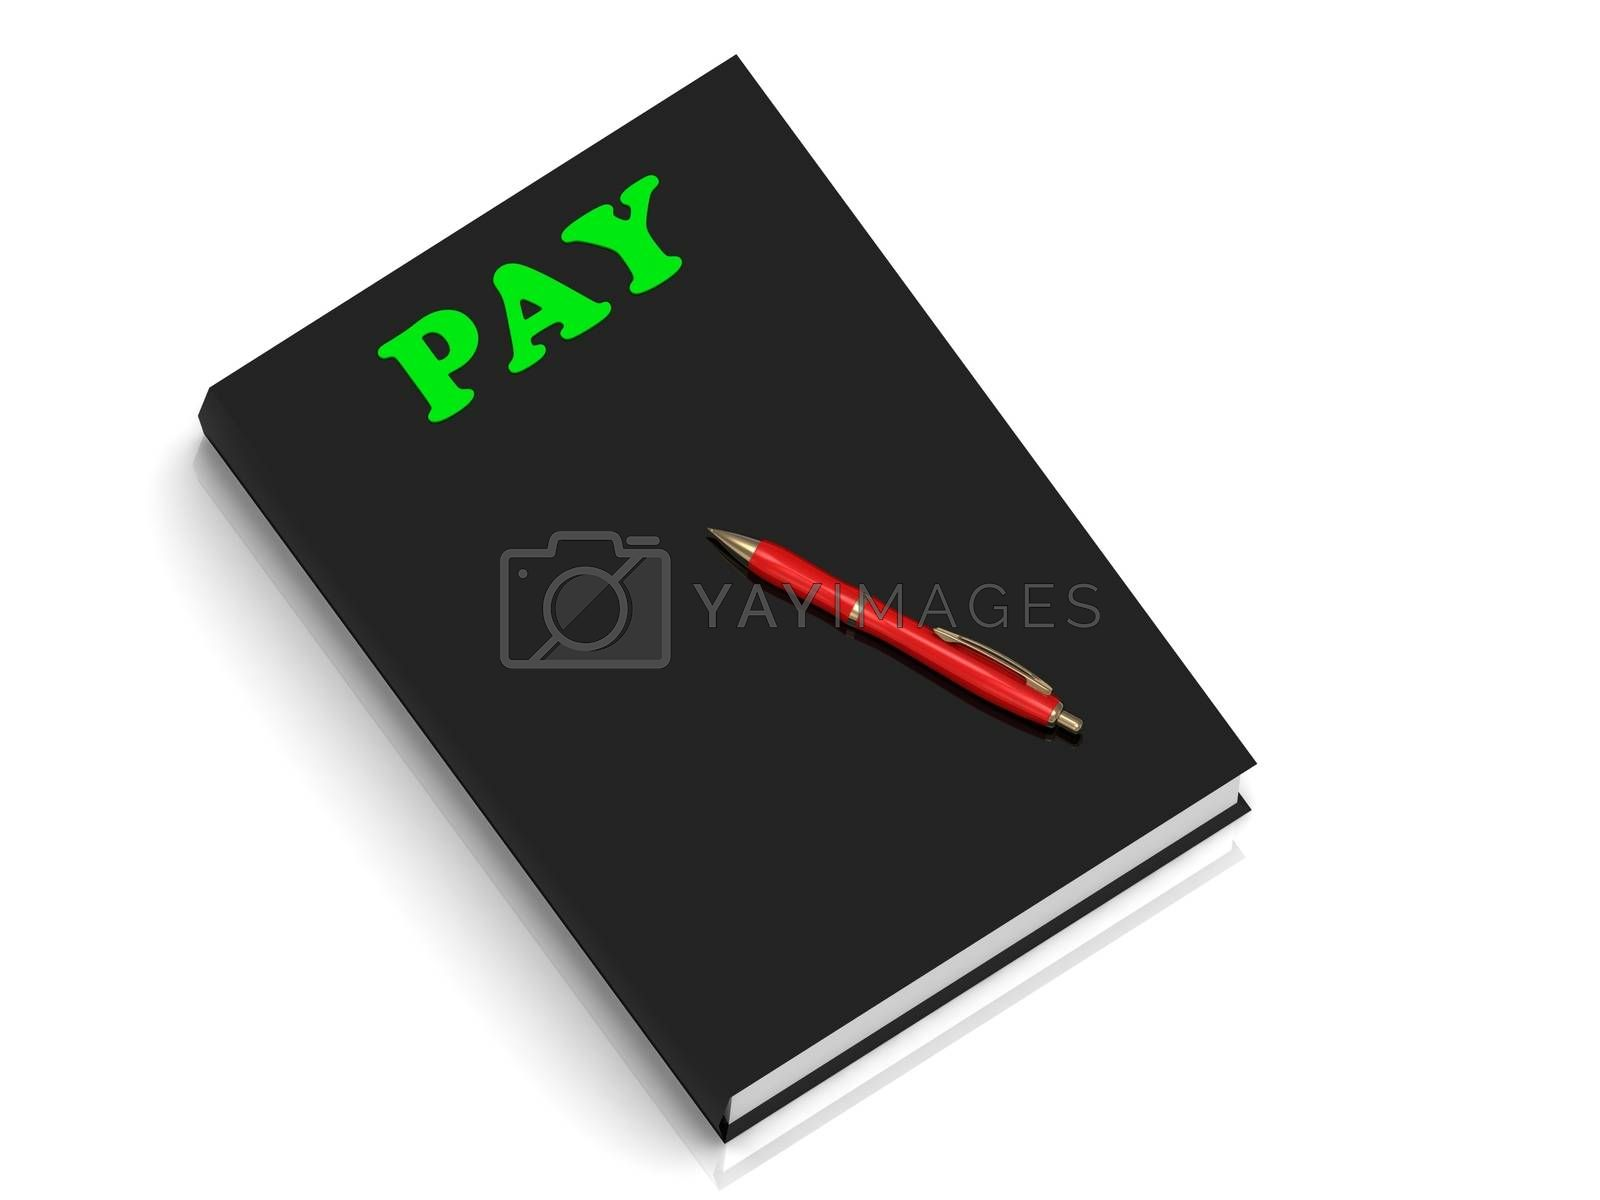 PAY- inscription of green letters on black book on white background